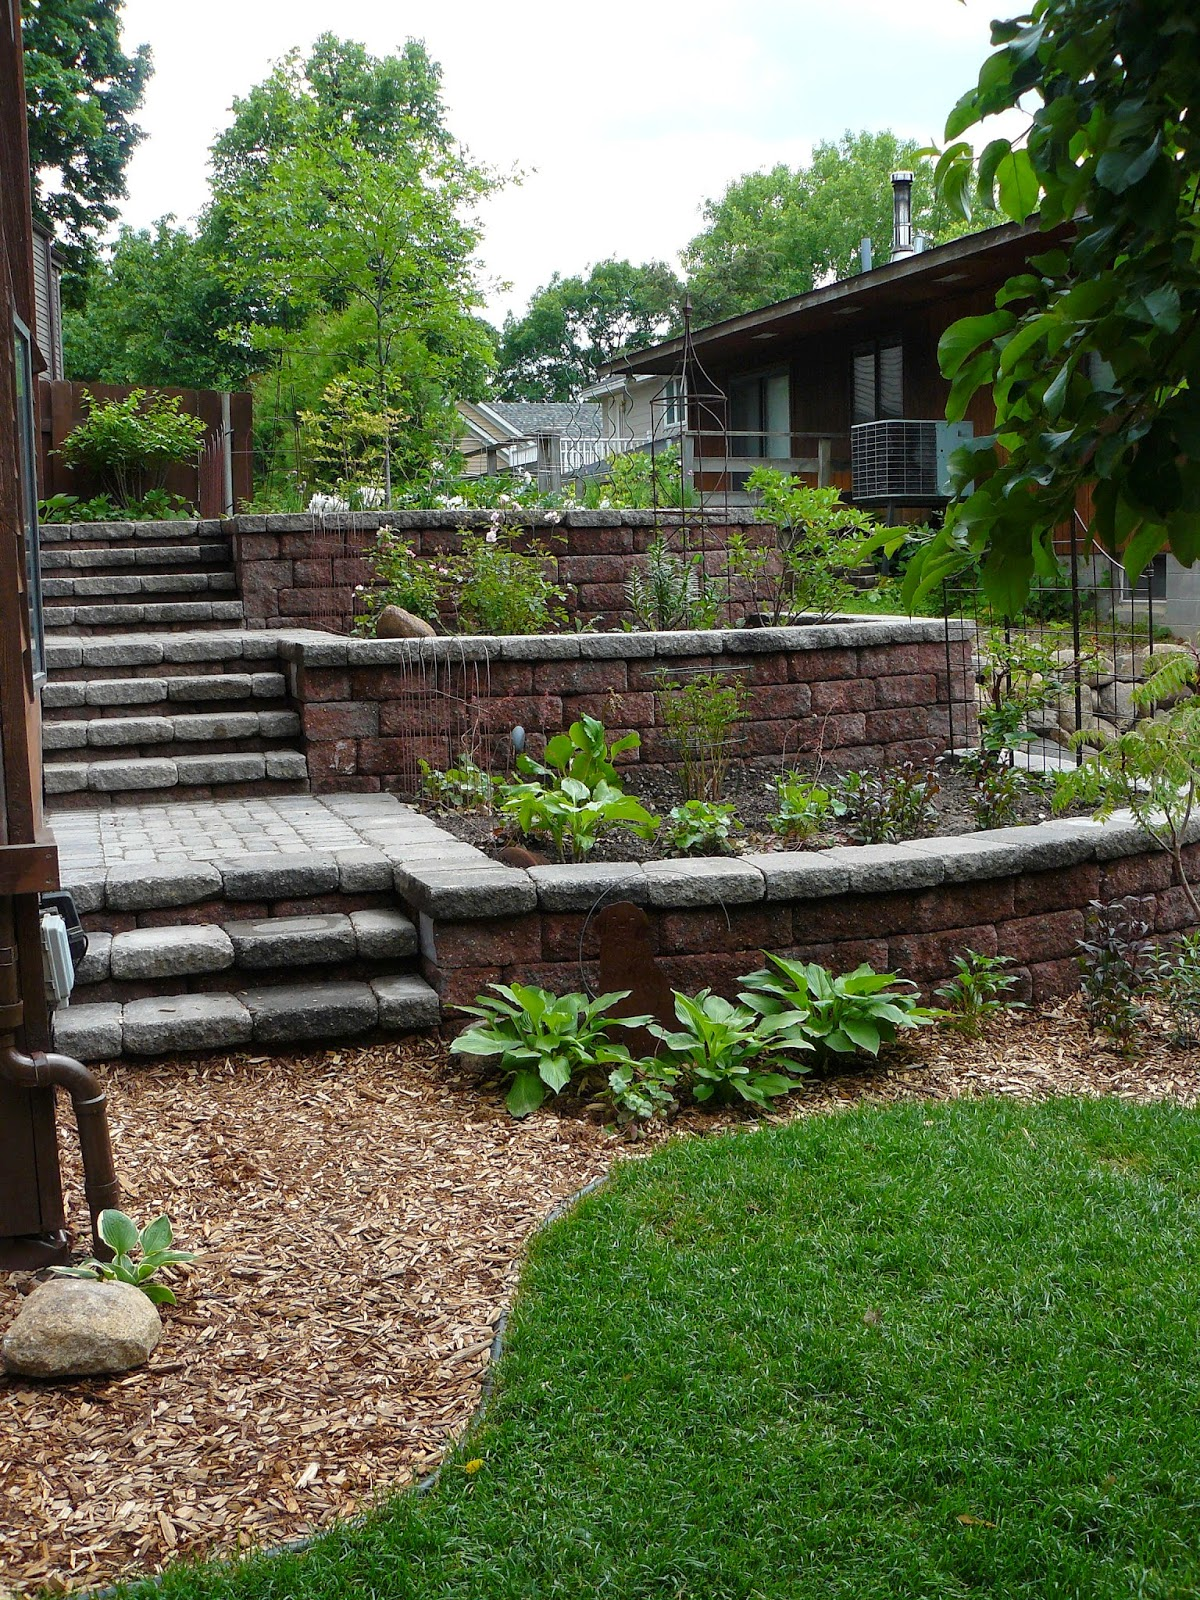 How To Find Help With A Home Landscape Yard And Garden